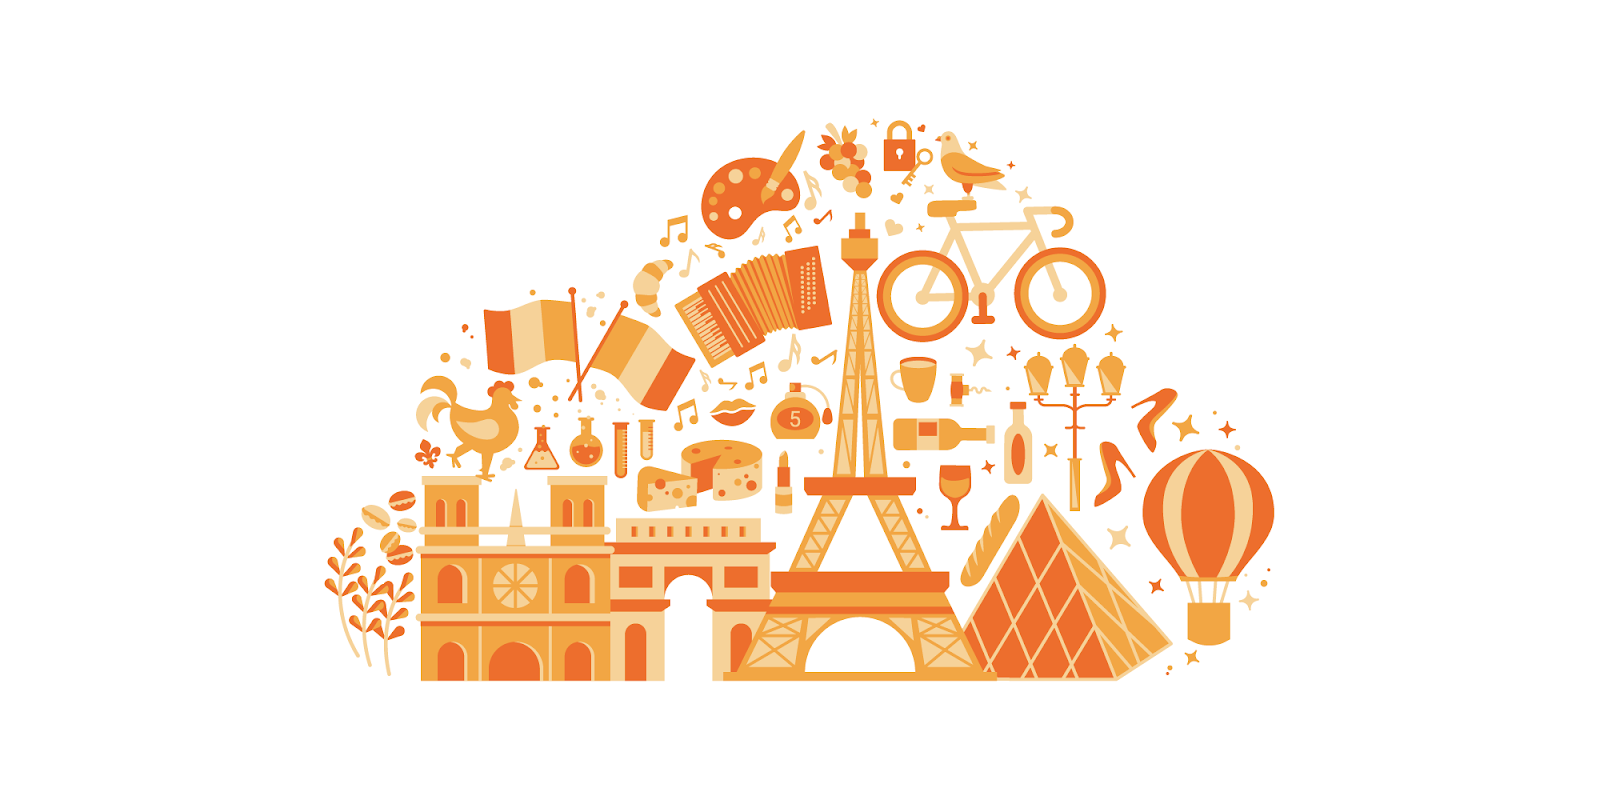 Bienvenue Cloudflare France! Why I'm helping Cloudflare grow in France